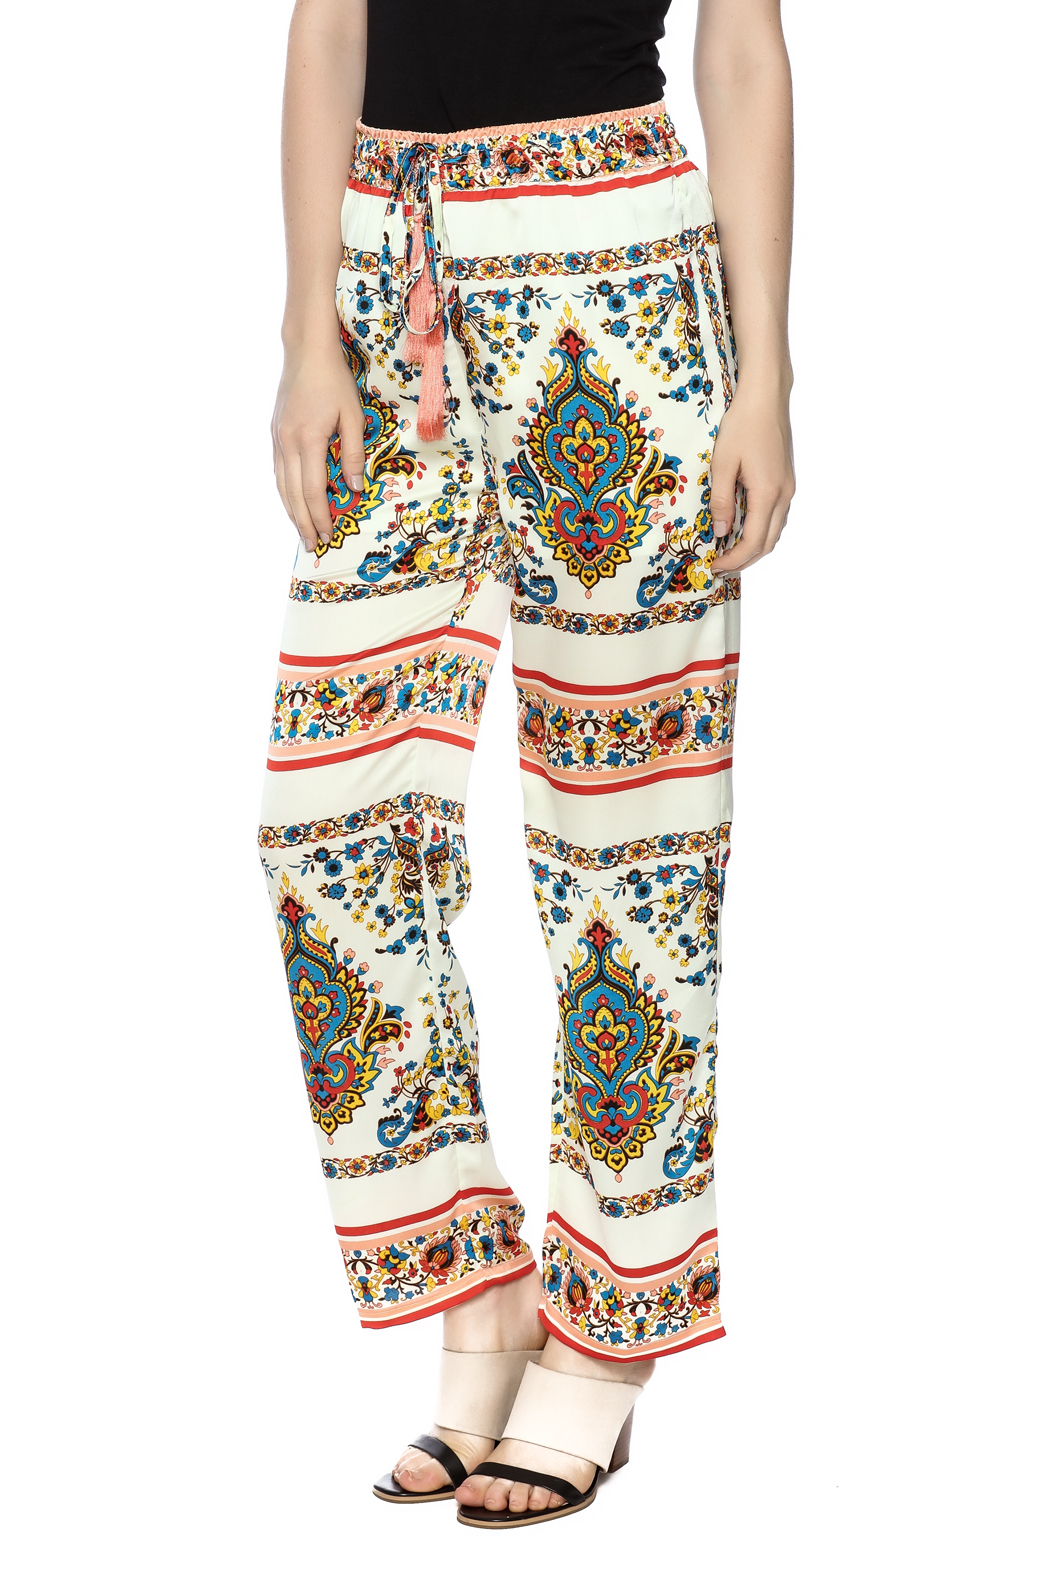 KAS New York Print Drawstring Pant - Main Image